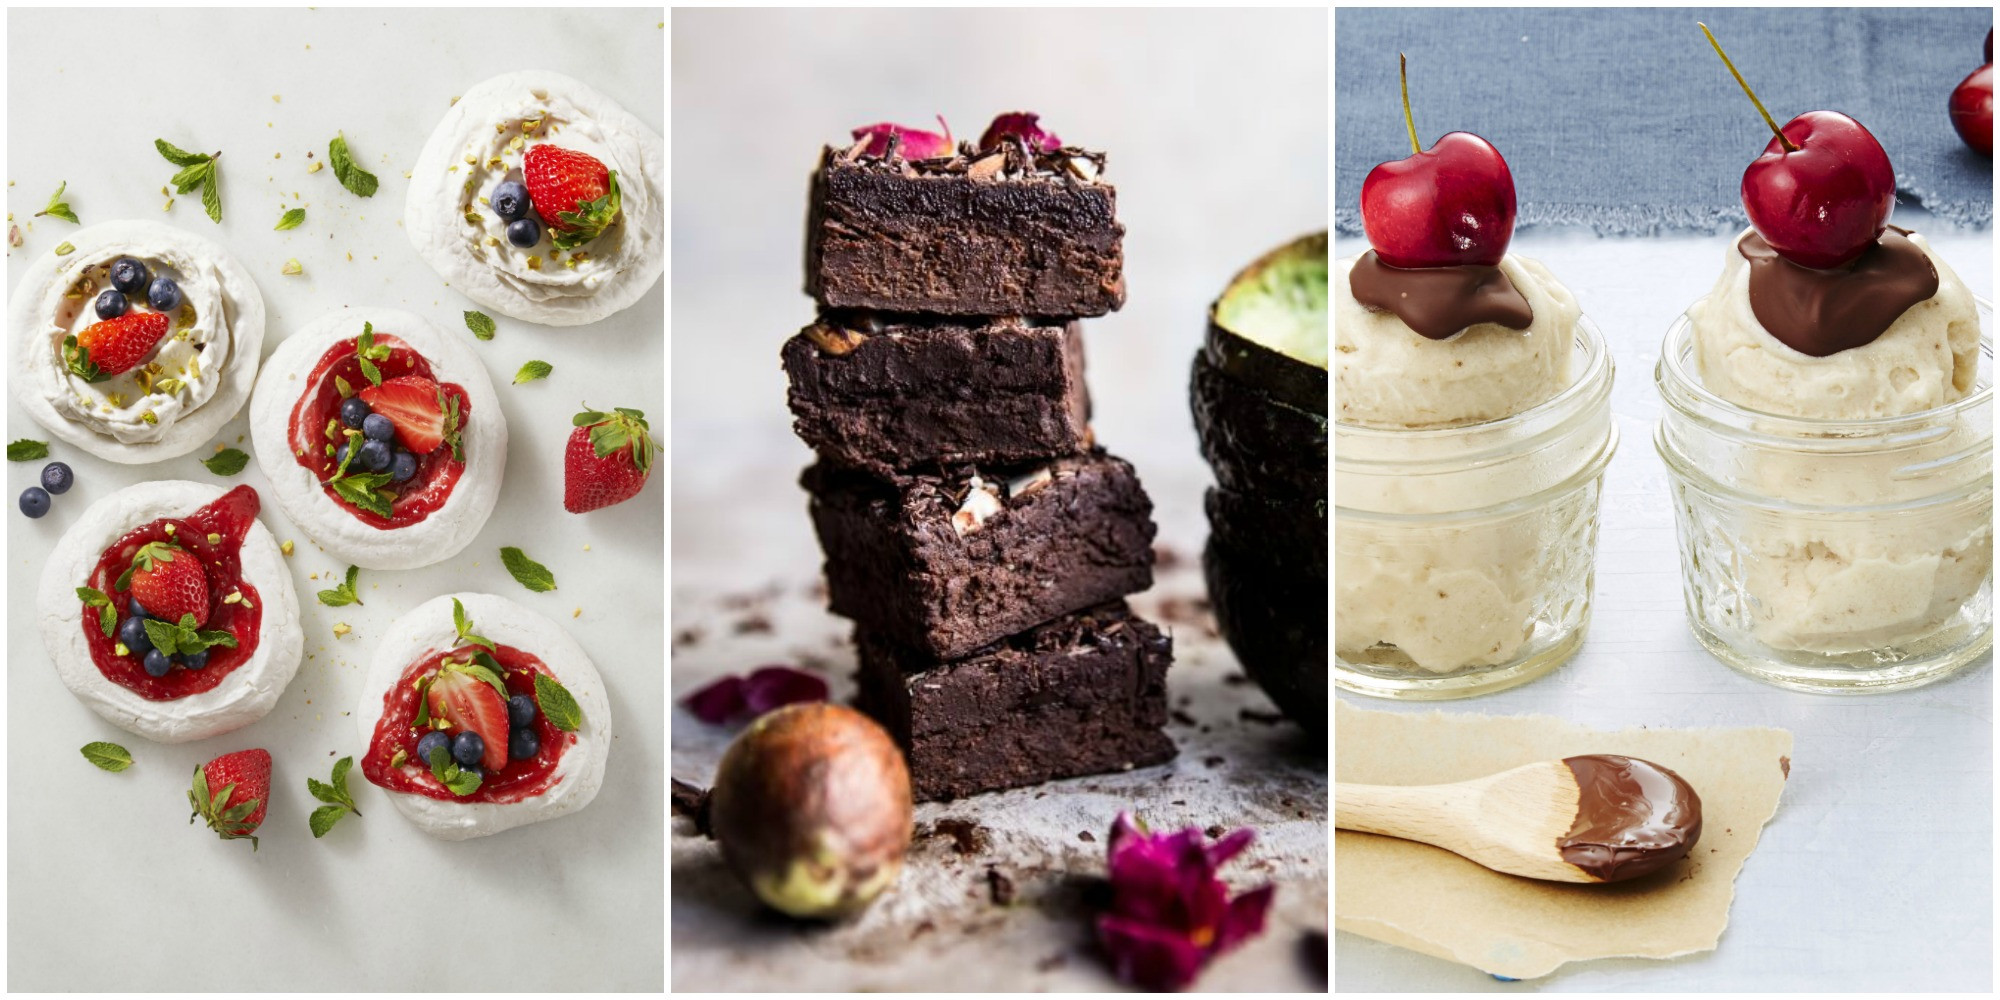 Recipe For Healthy Desserts  15 Best Healthy Dessert Recipes Easy Ideas for Low